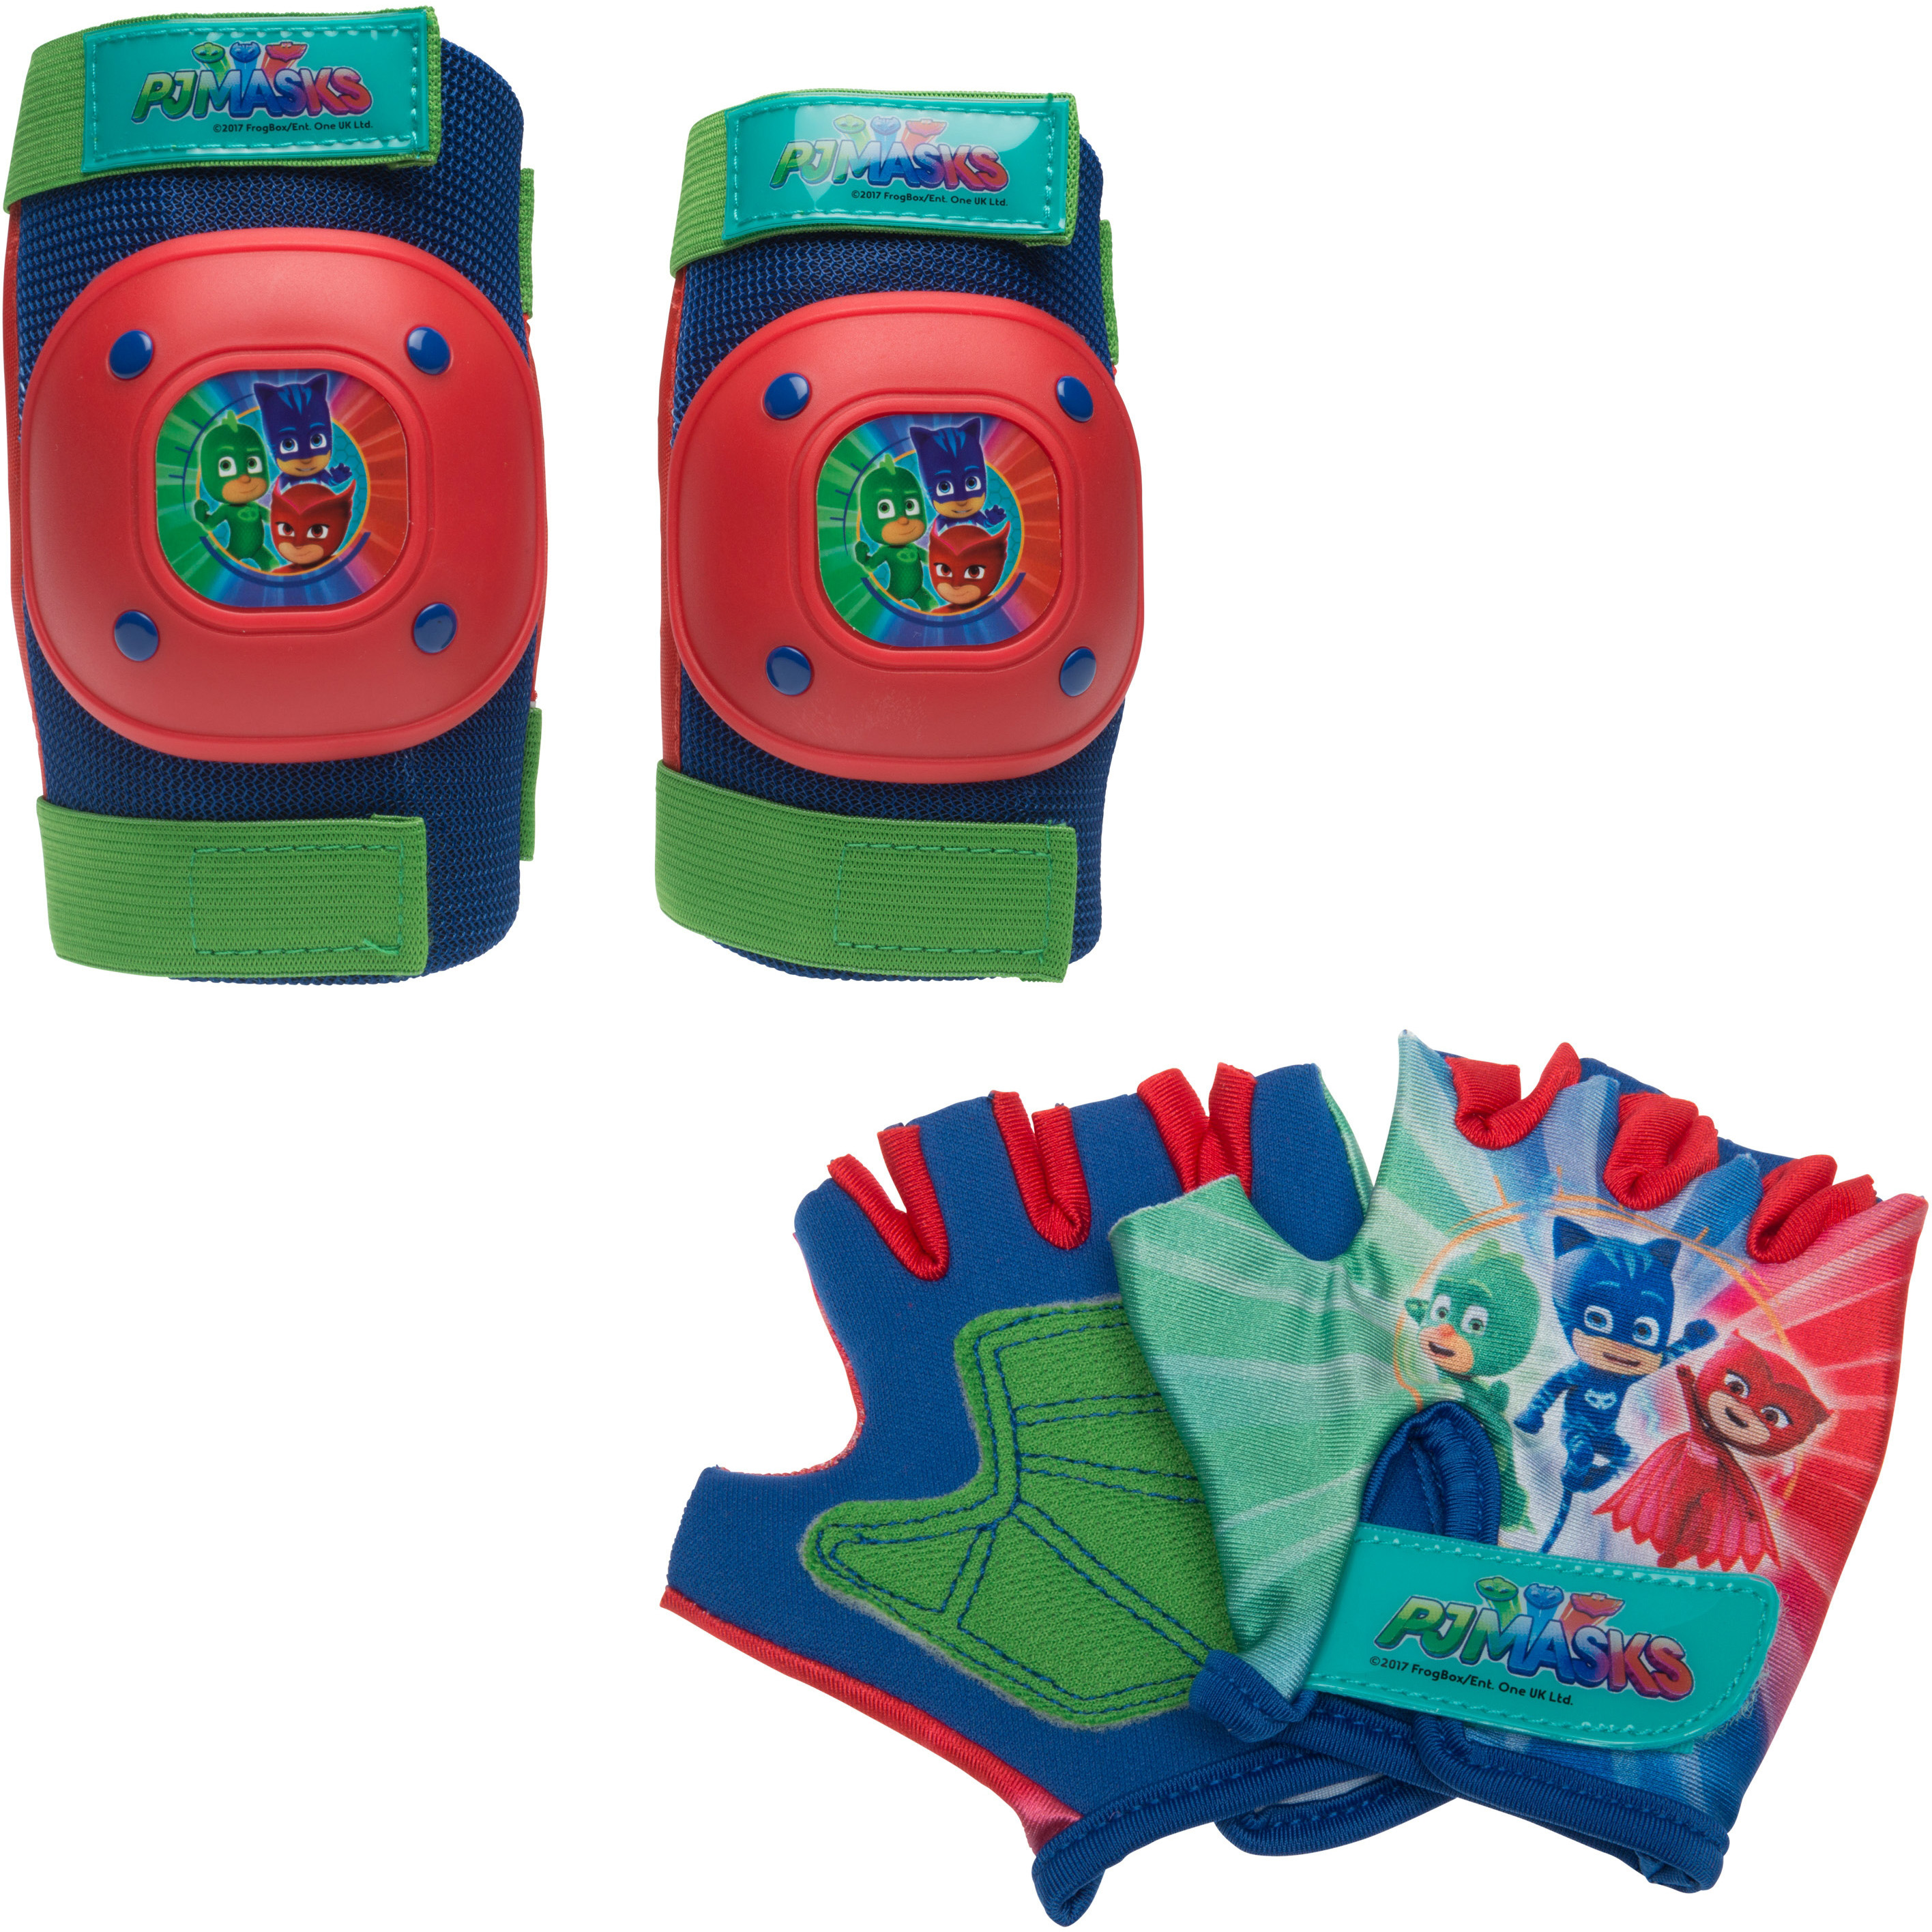 Bell Sports PJ Masks Protective Pad and Glove Set, Blue/Green/Red